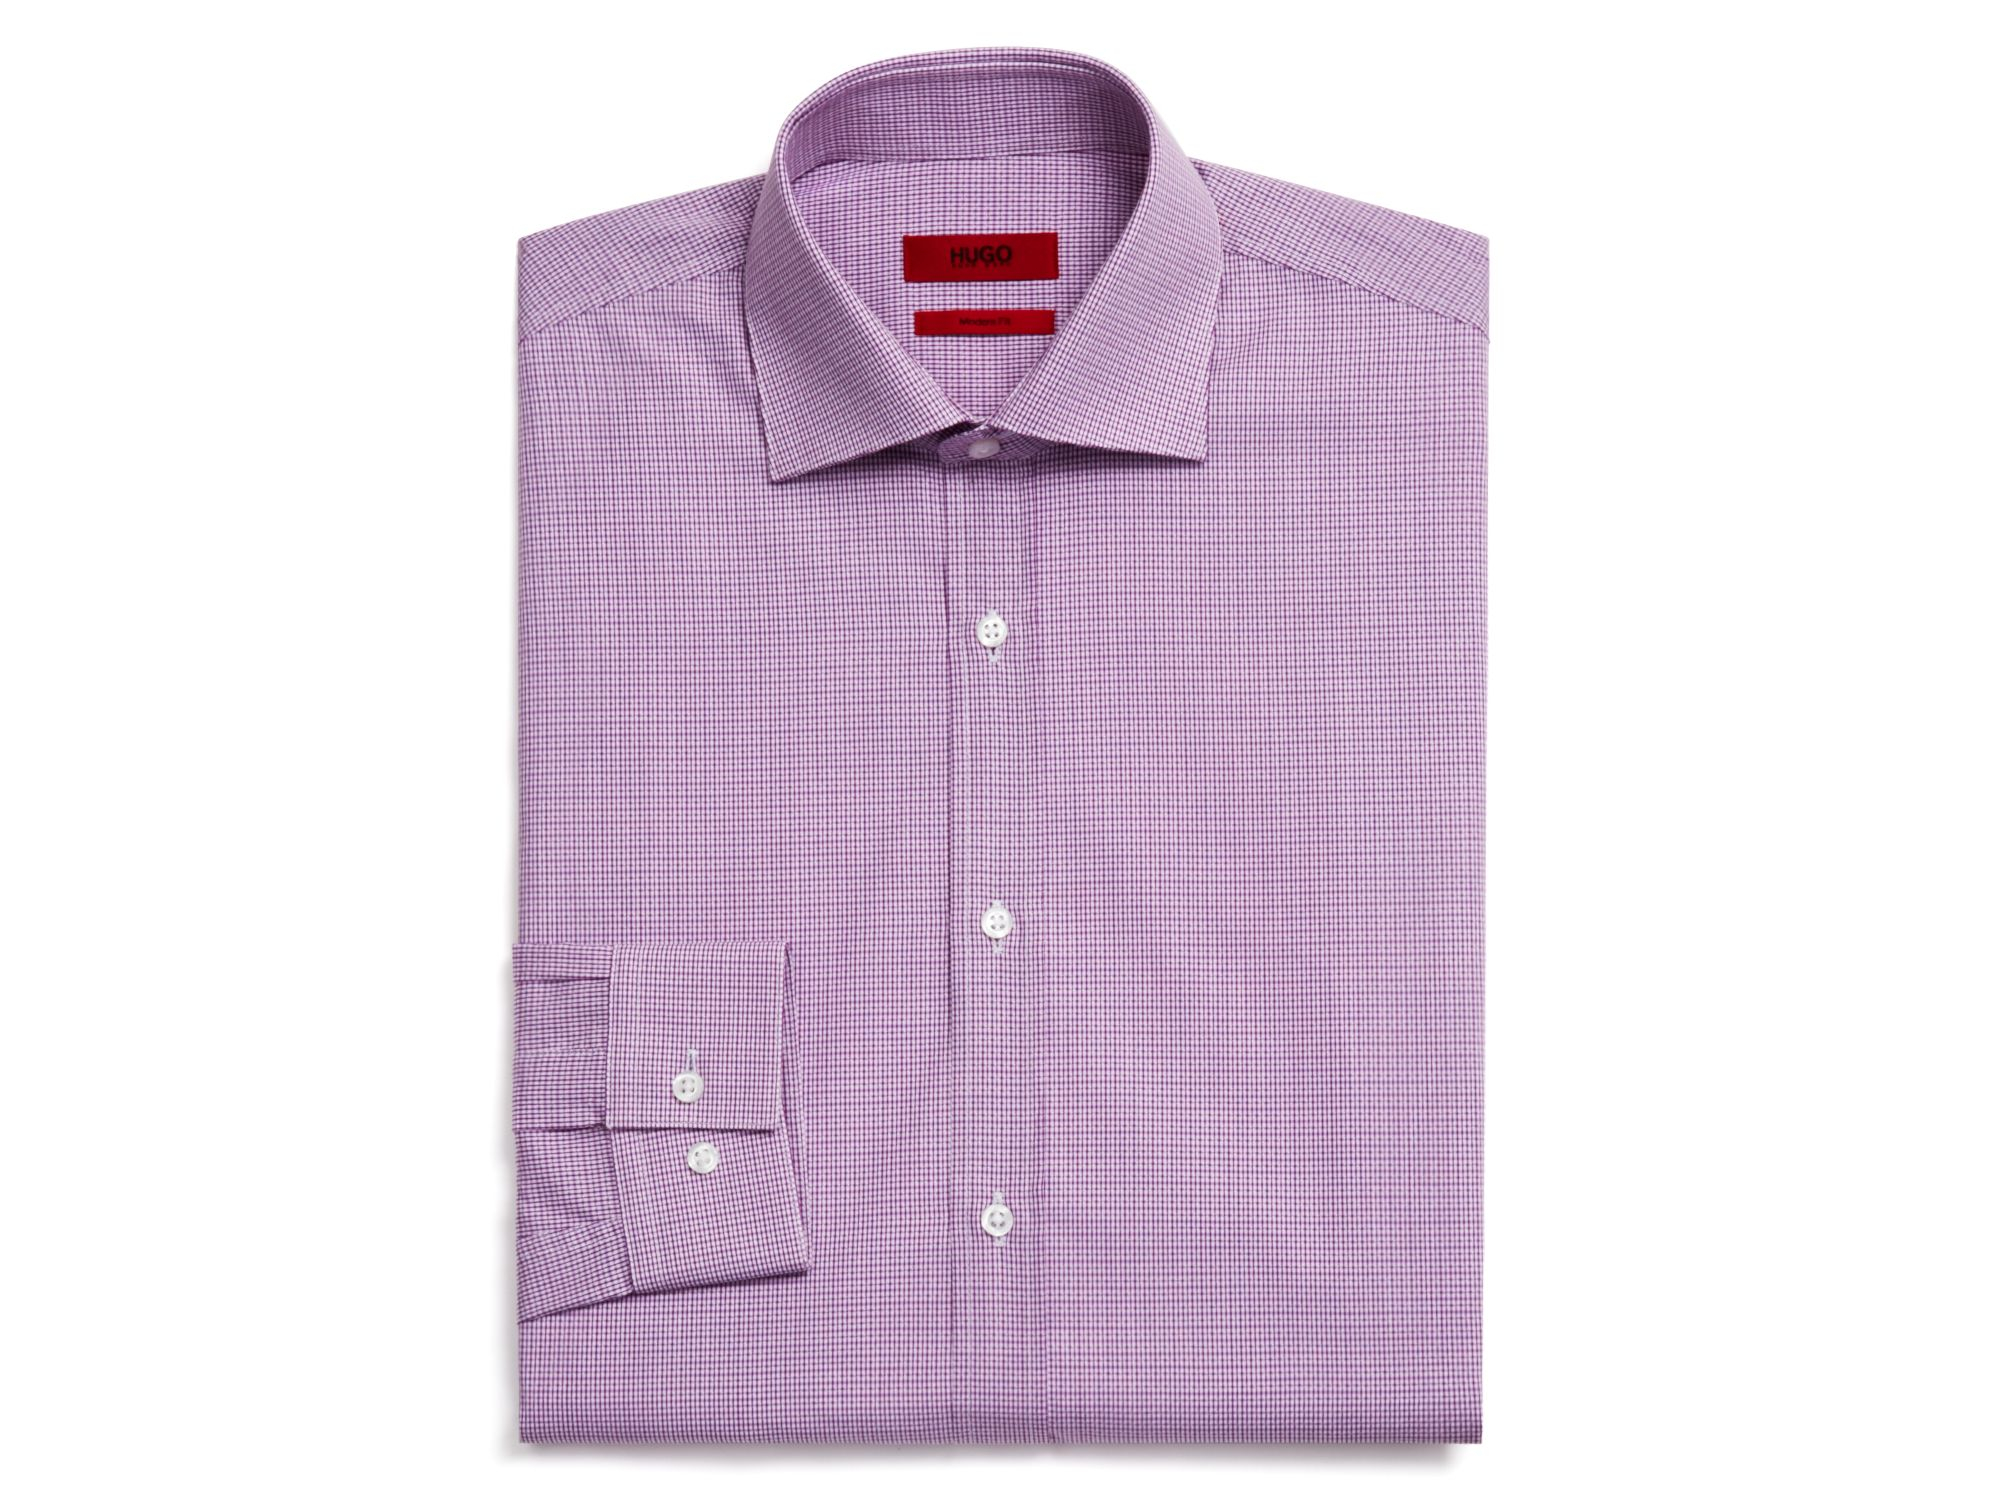 Boss hugo enderson x light check dress shirt regular fit Light purple dress shirt men